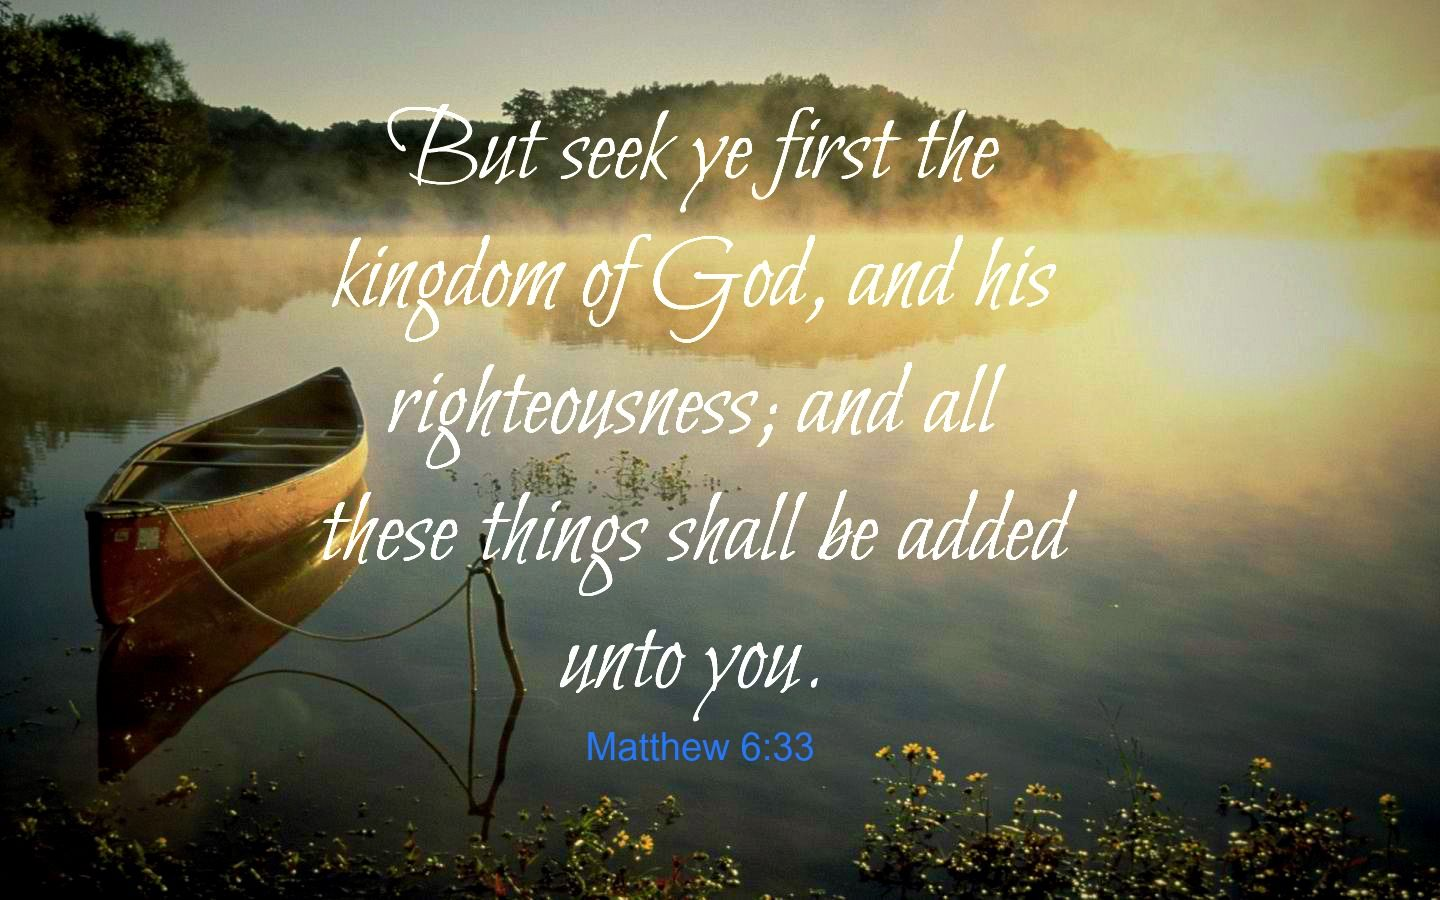 Kjv 33 but seek ye first the kingdom of god and his righteousness